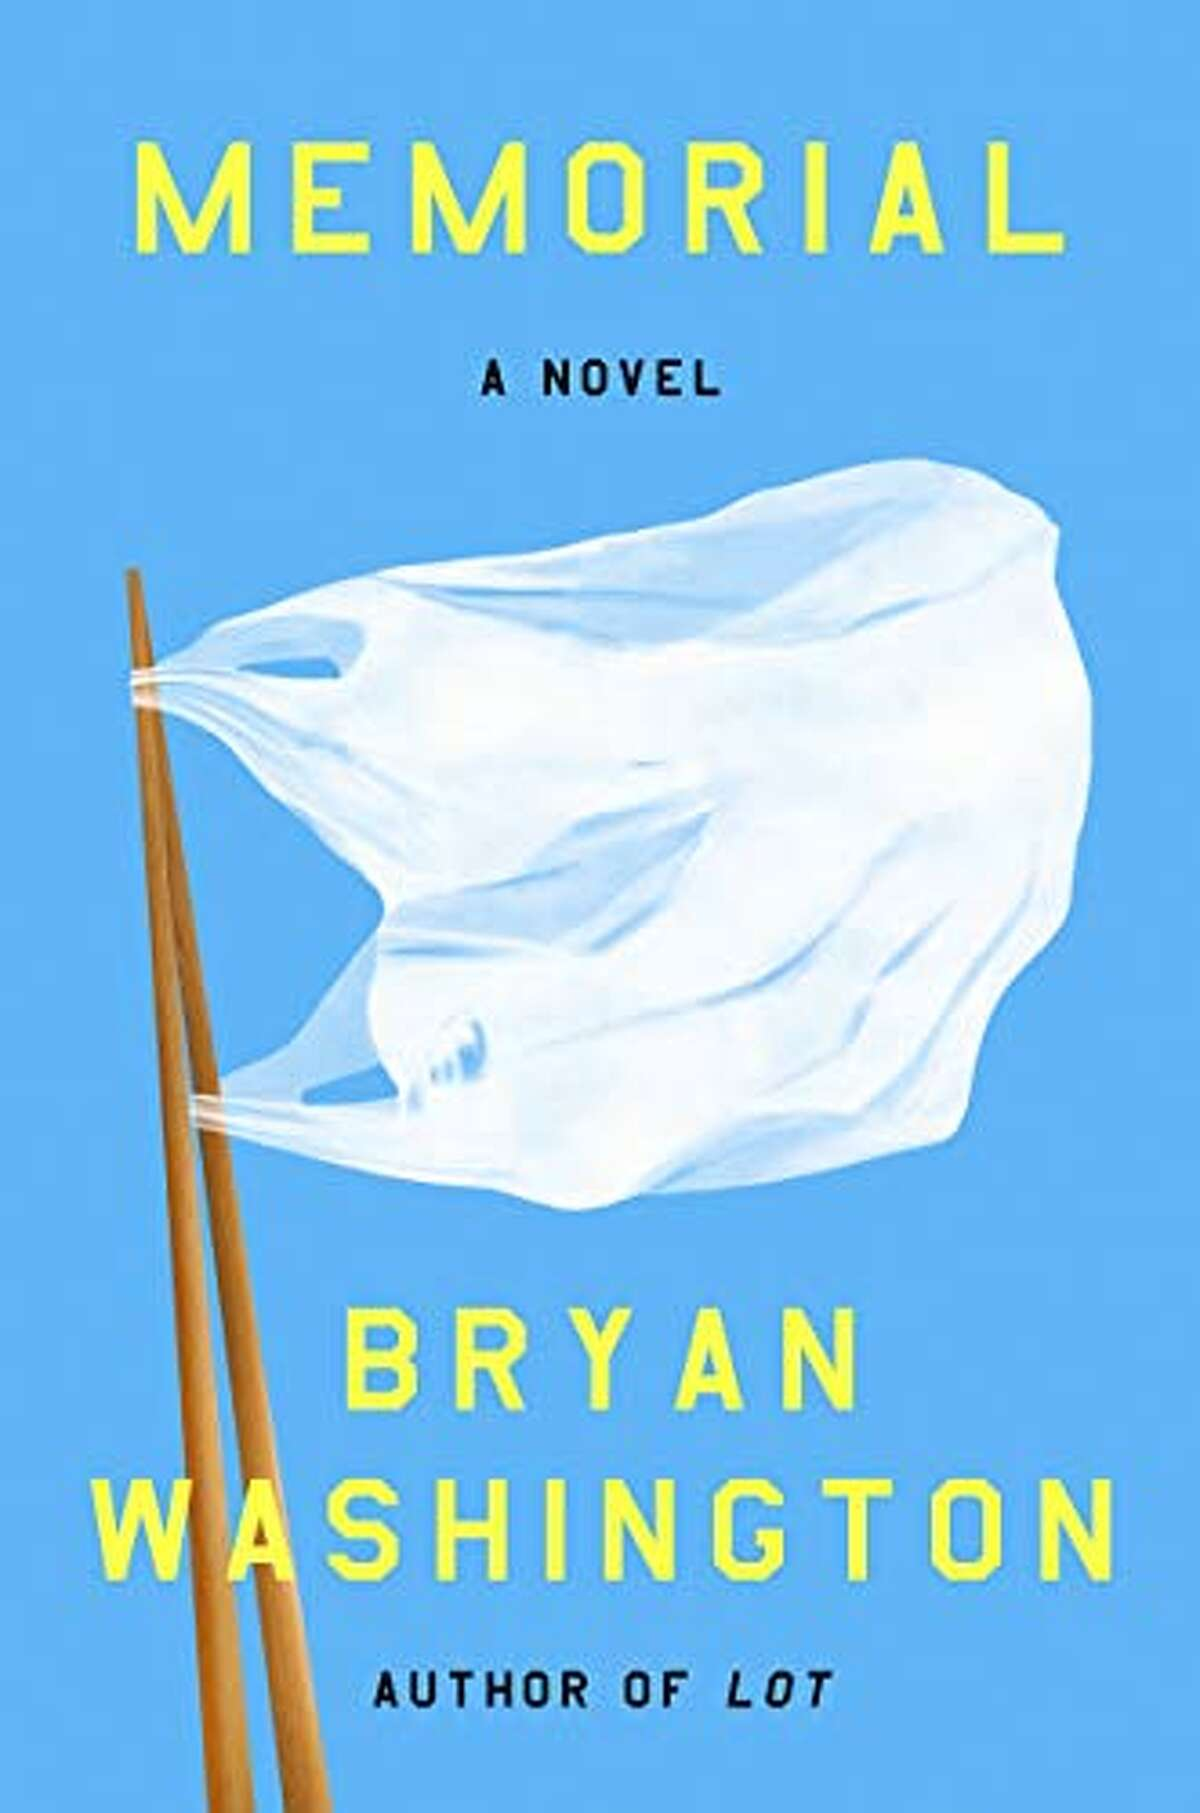 Cover image for Memorial, the debut novel by Bryan Washington.